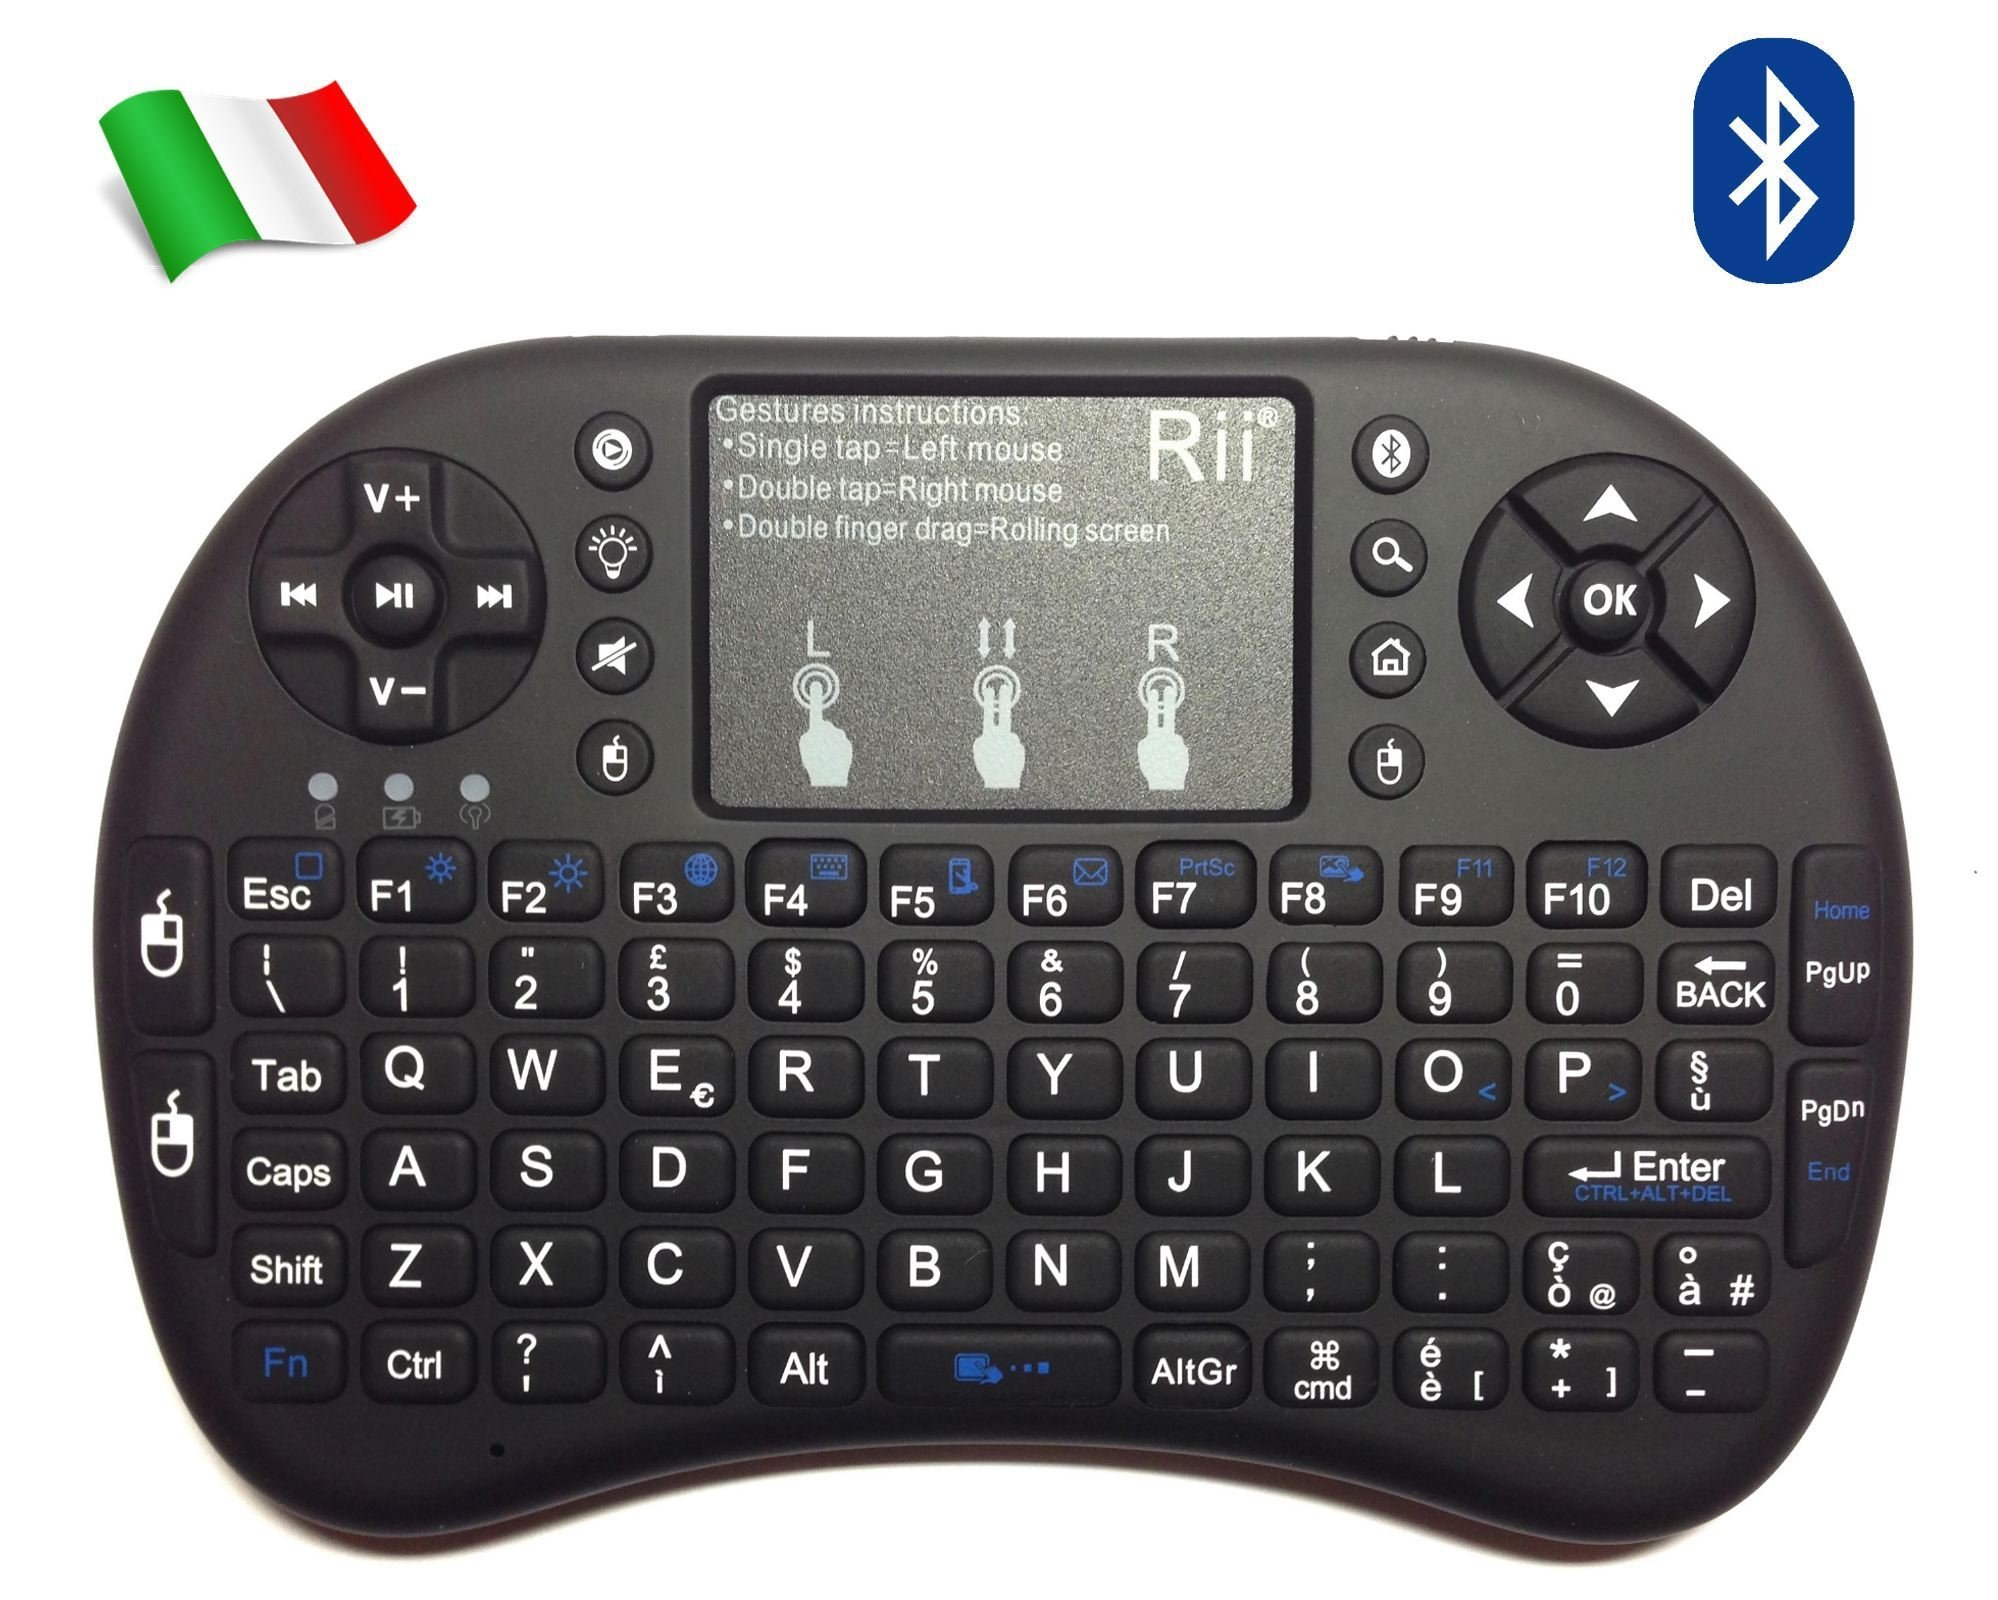 Rii Mini i8+ - Mini teclado inalámbrico (disposición de teclas italiana), retroiluminado, con panel táctil para smart TV, mini PC, HTPC, consola y ordenador. i8+ Bluetooth (NERO): Amazon.es: Informática